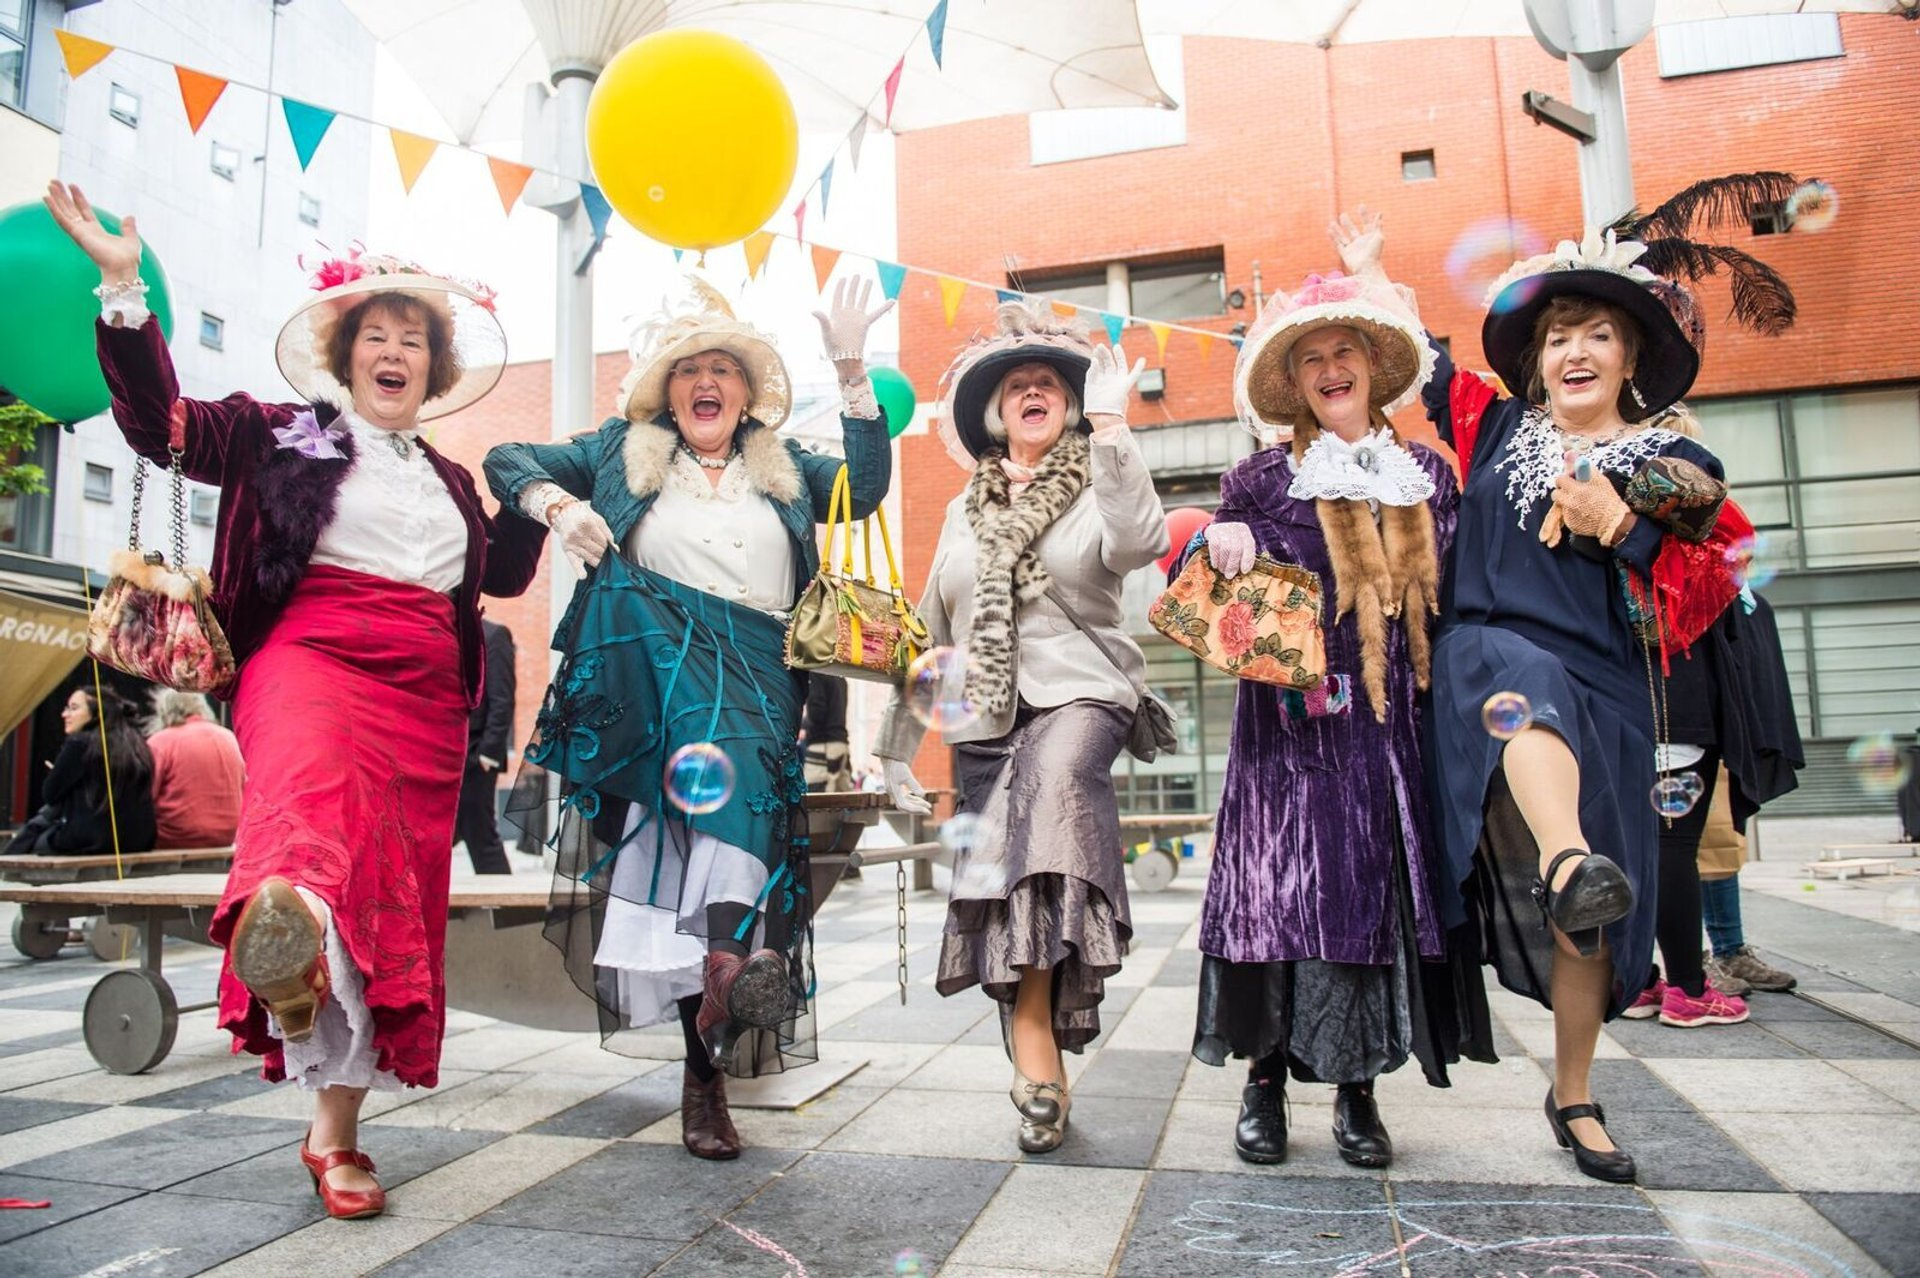 Bloomsday Festival in Dublin 2020 - Best Time